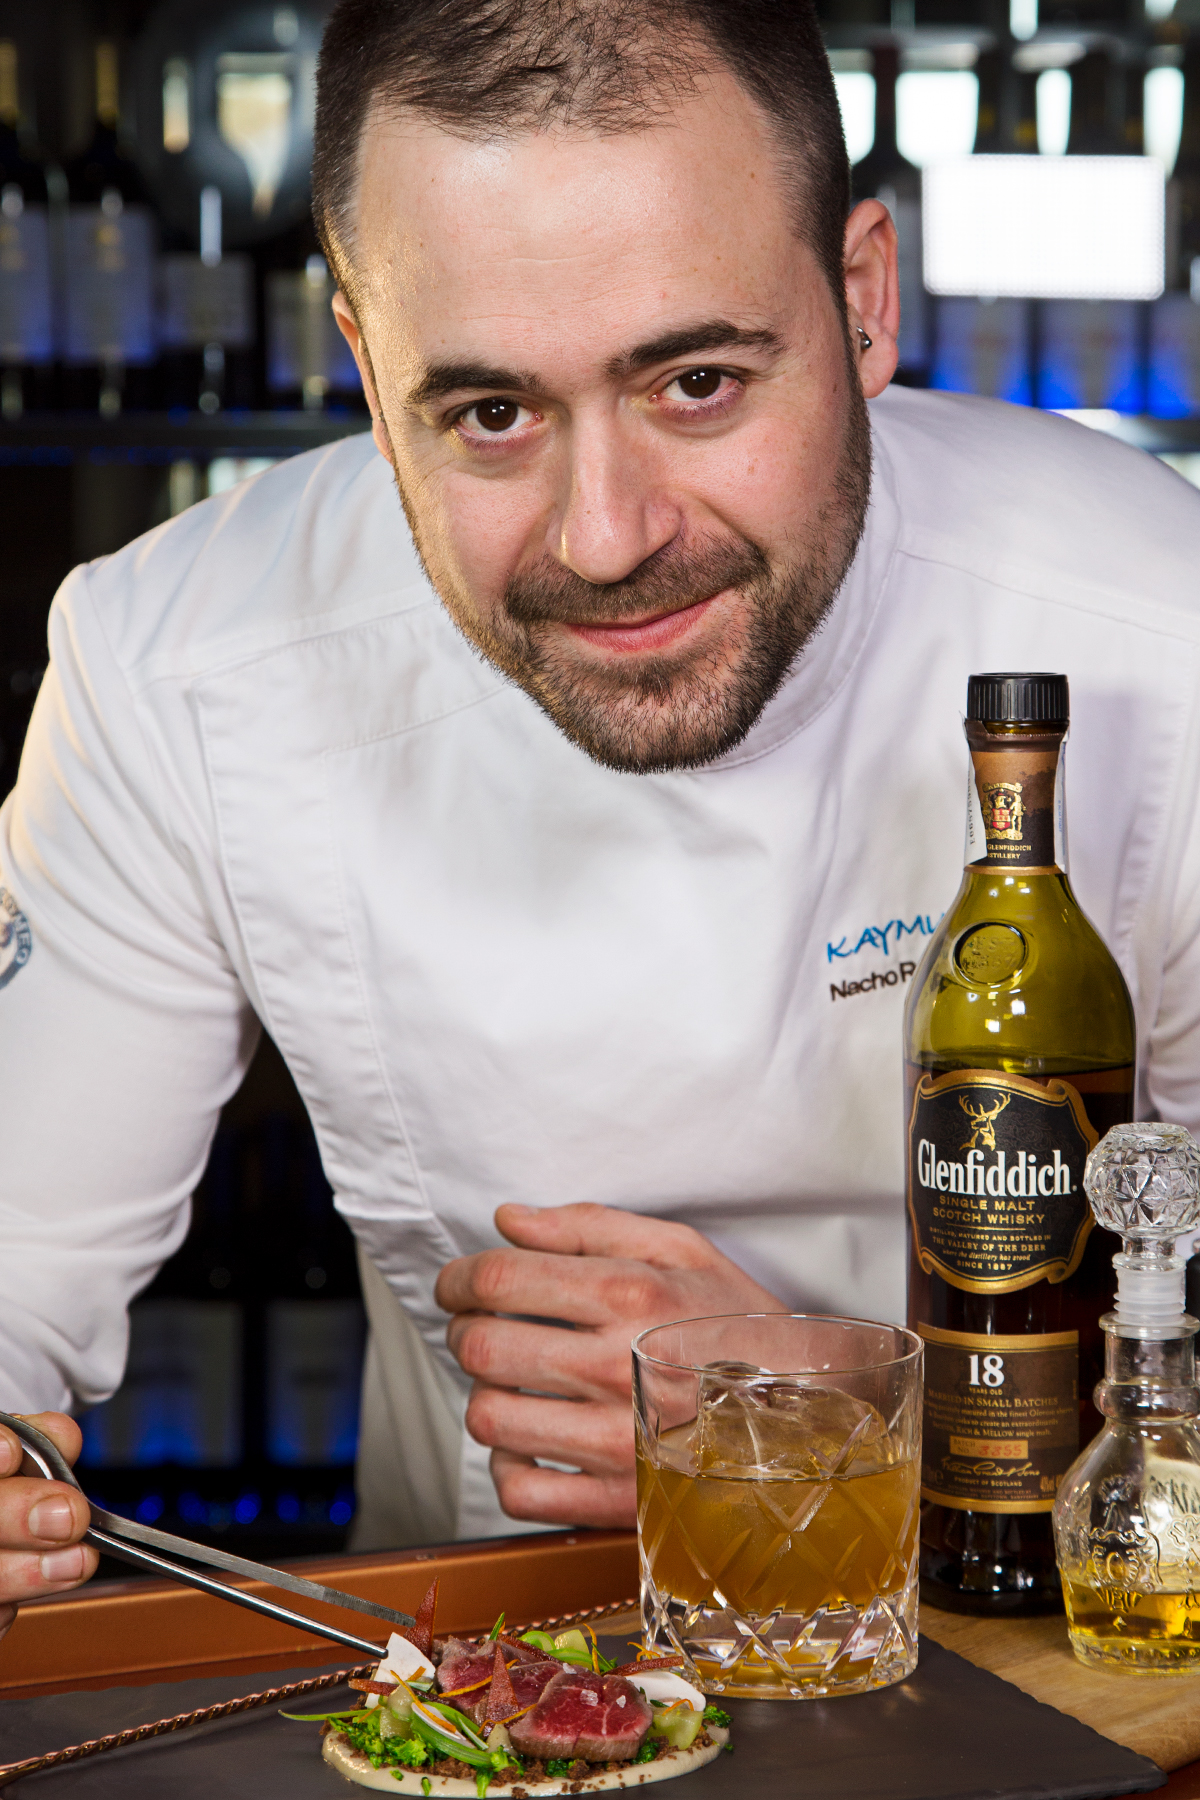 Chef-Nacho-Romero-Kaumuz-Valencia-Glenfiddich-Fusion-Sr-Erreka-Films-Photo-fotografia editorial publicidad mixology cocktails drinks spot clips.jpg